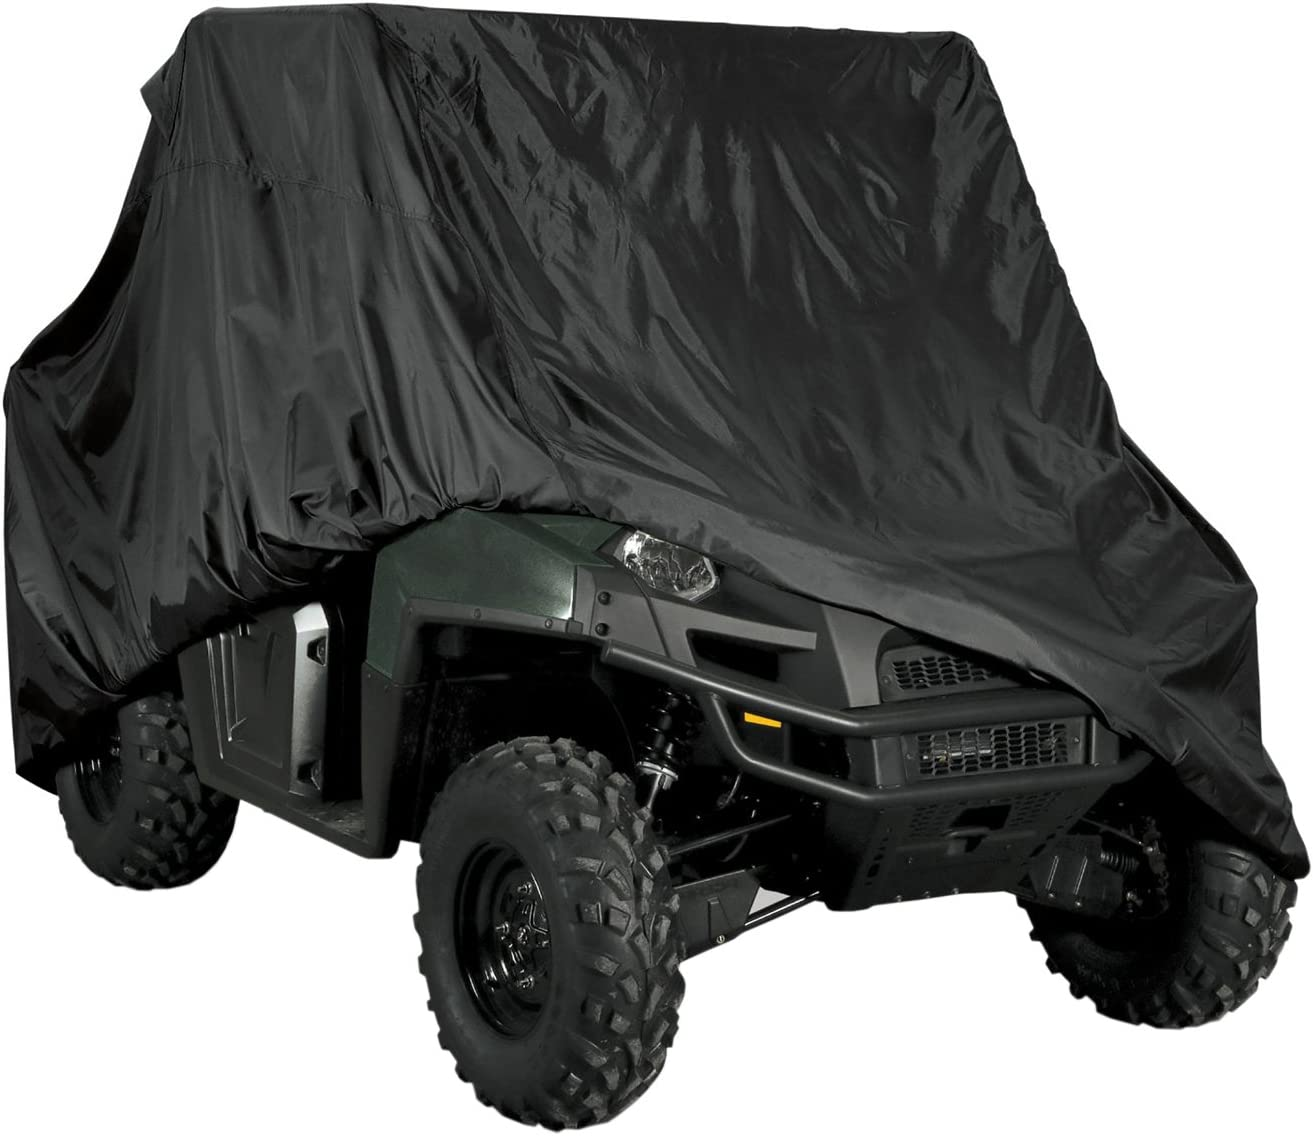 Raider 02-7727 SX-Series XXXX-Large Weather and UV-Resistant Storage Cover Fits UTVs up to 169 Long